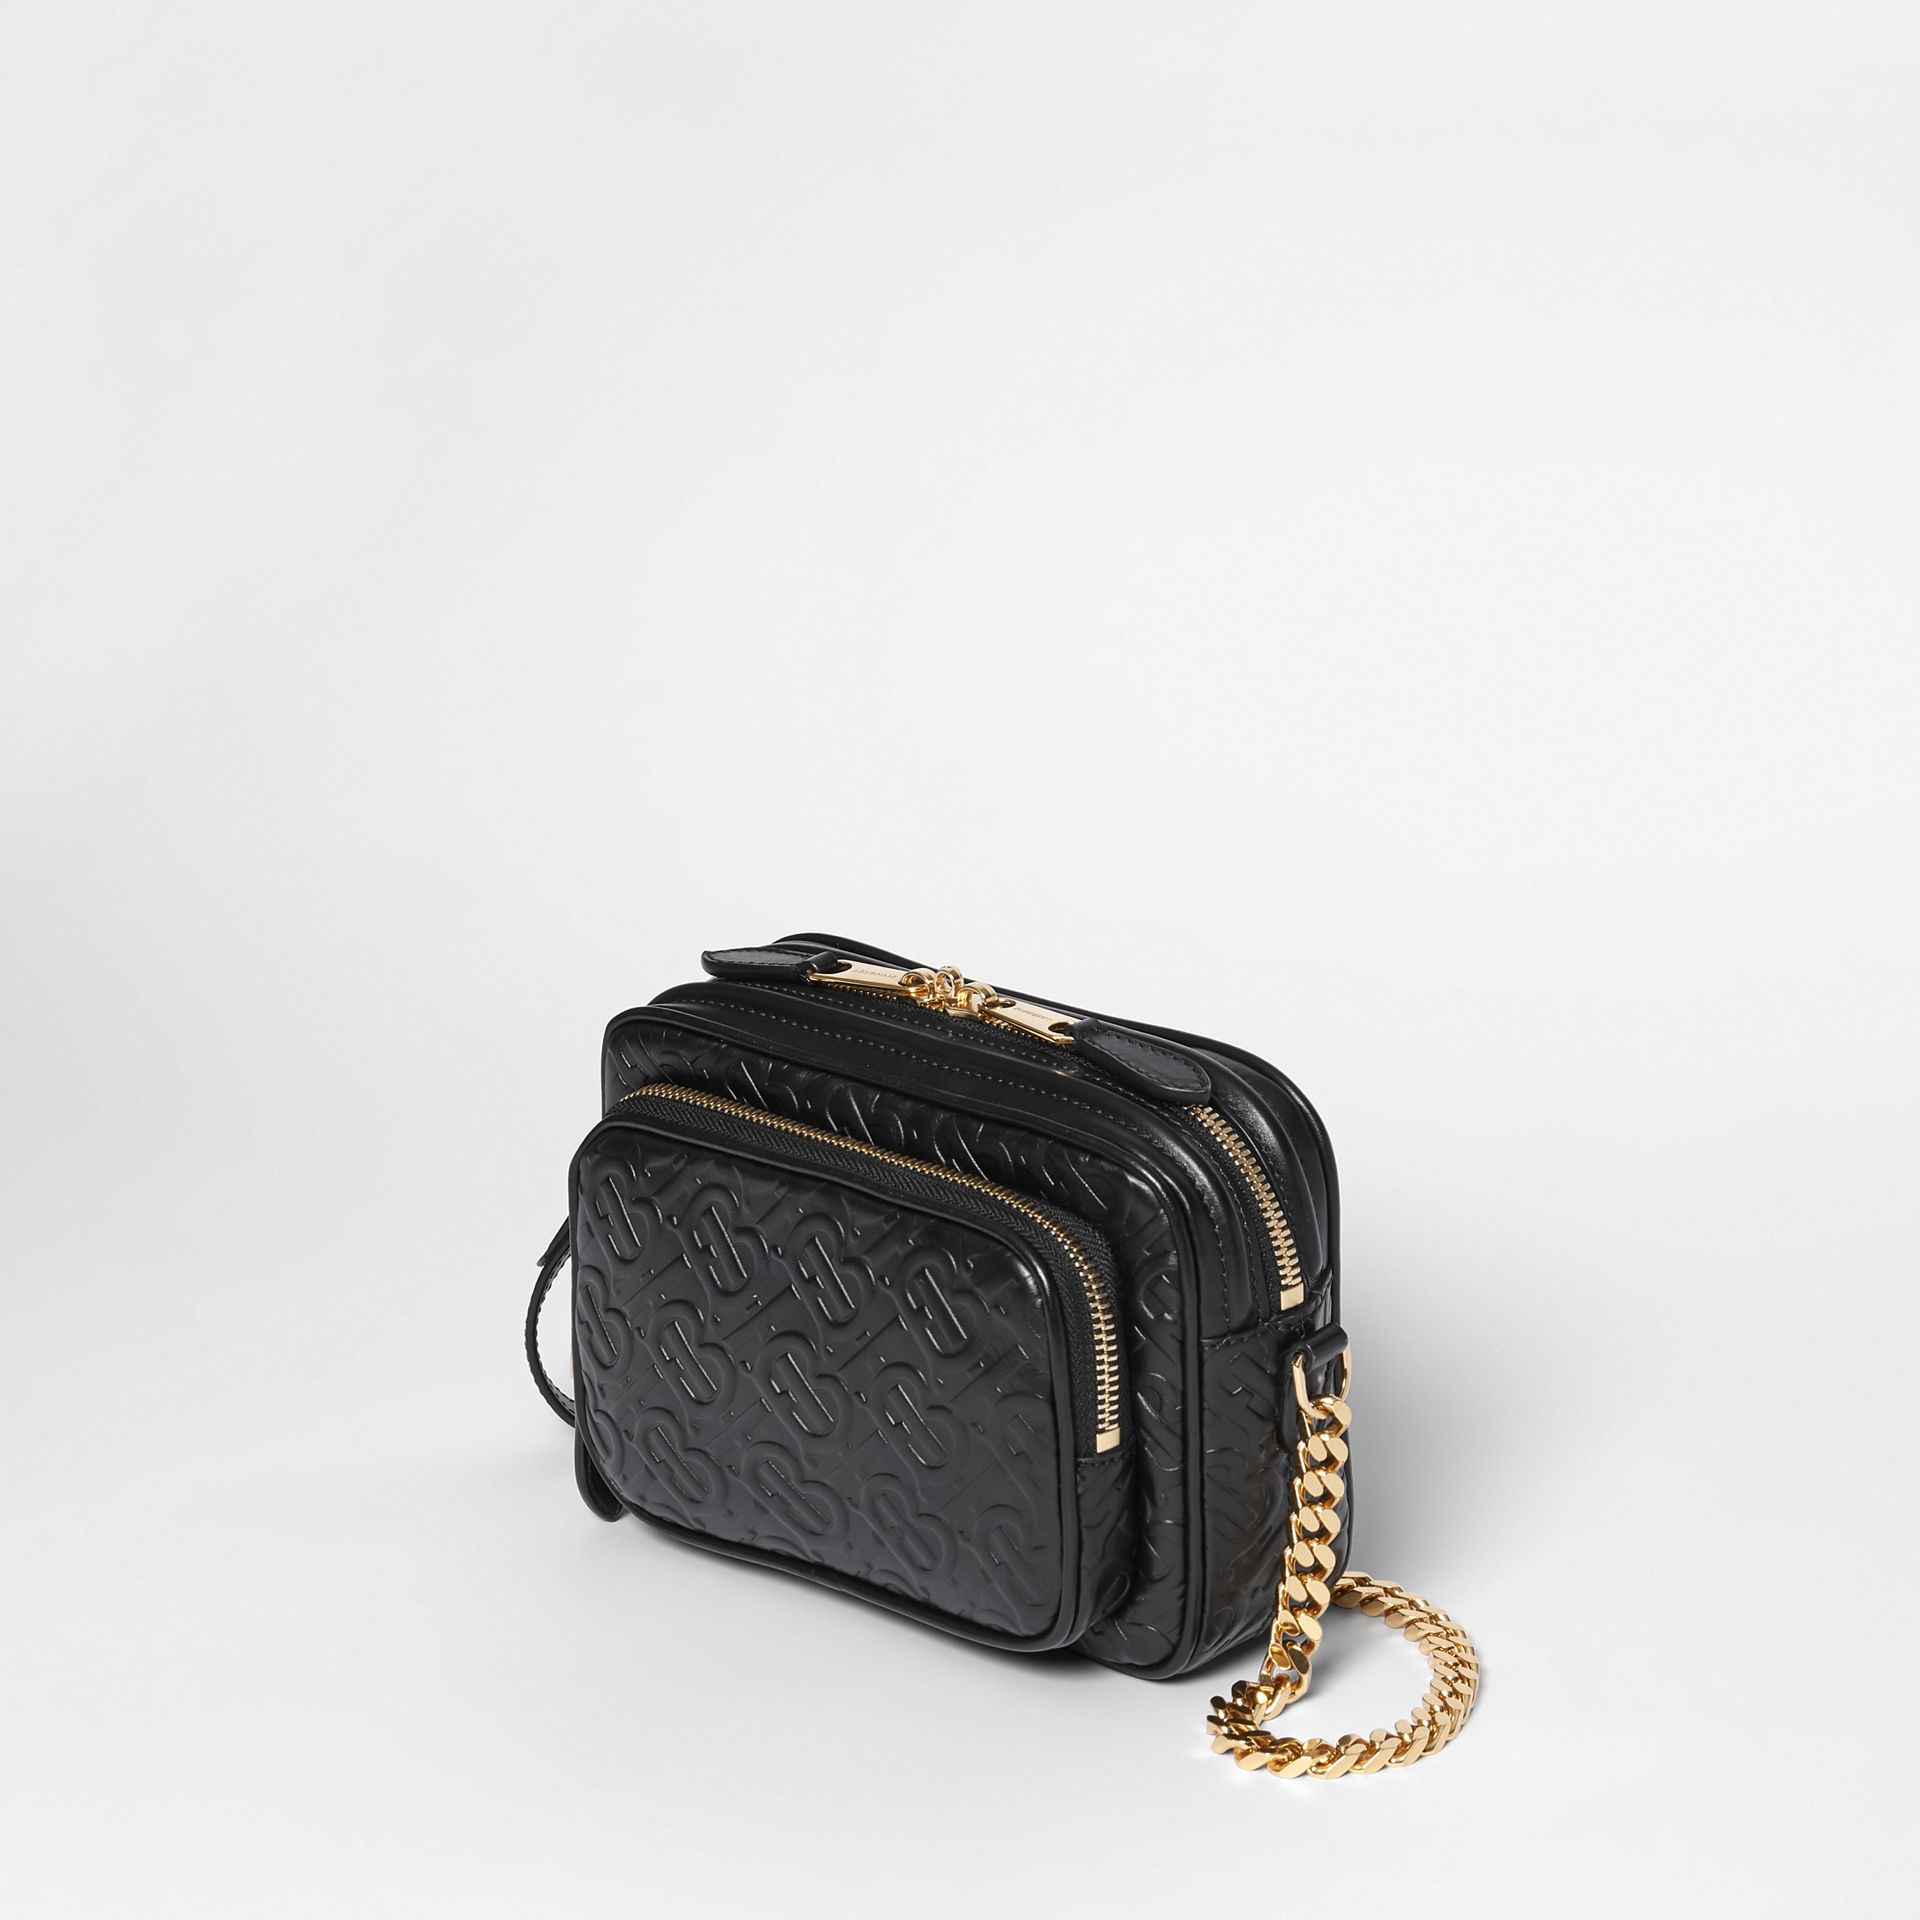 Monogram Leather Camera Bag in Black - Women | Burberry United States - gallery image 3